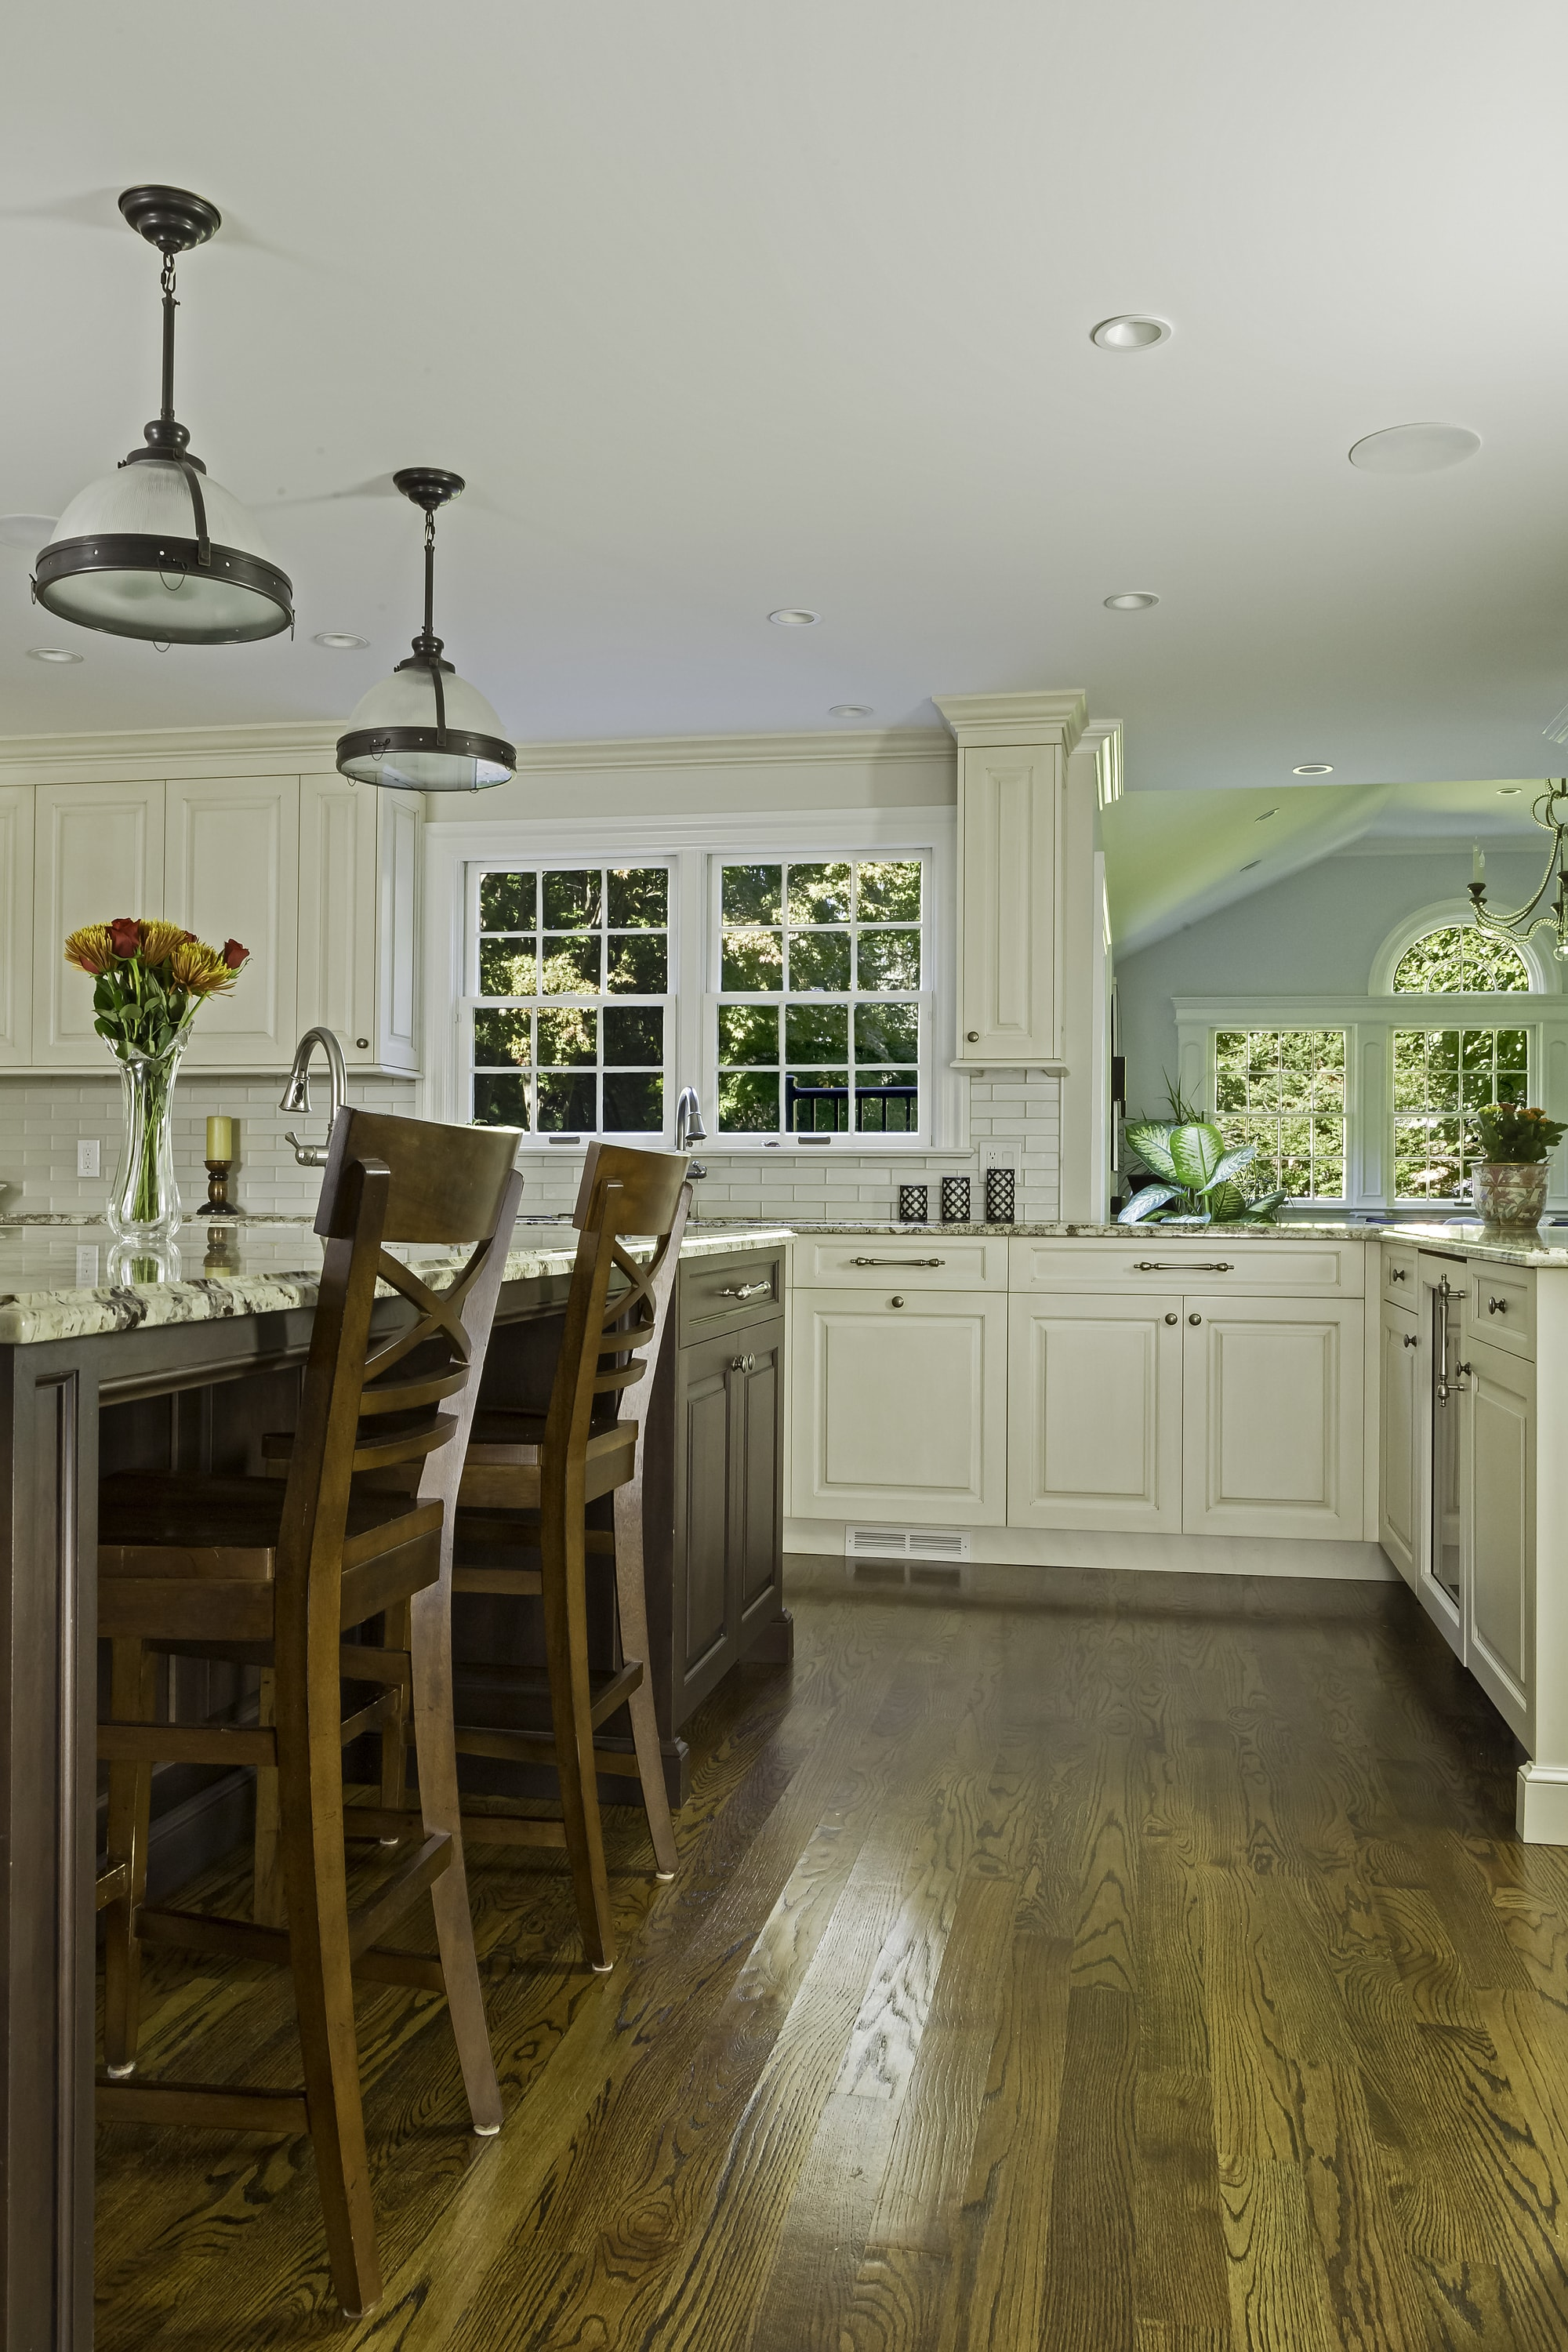 Traditional style kitchen with bright light setting